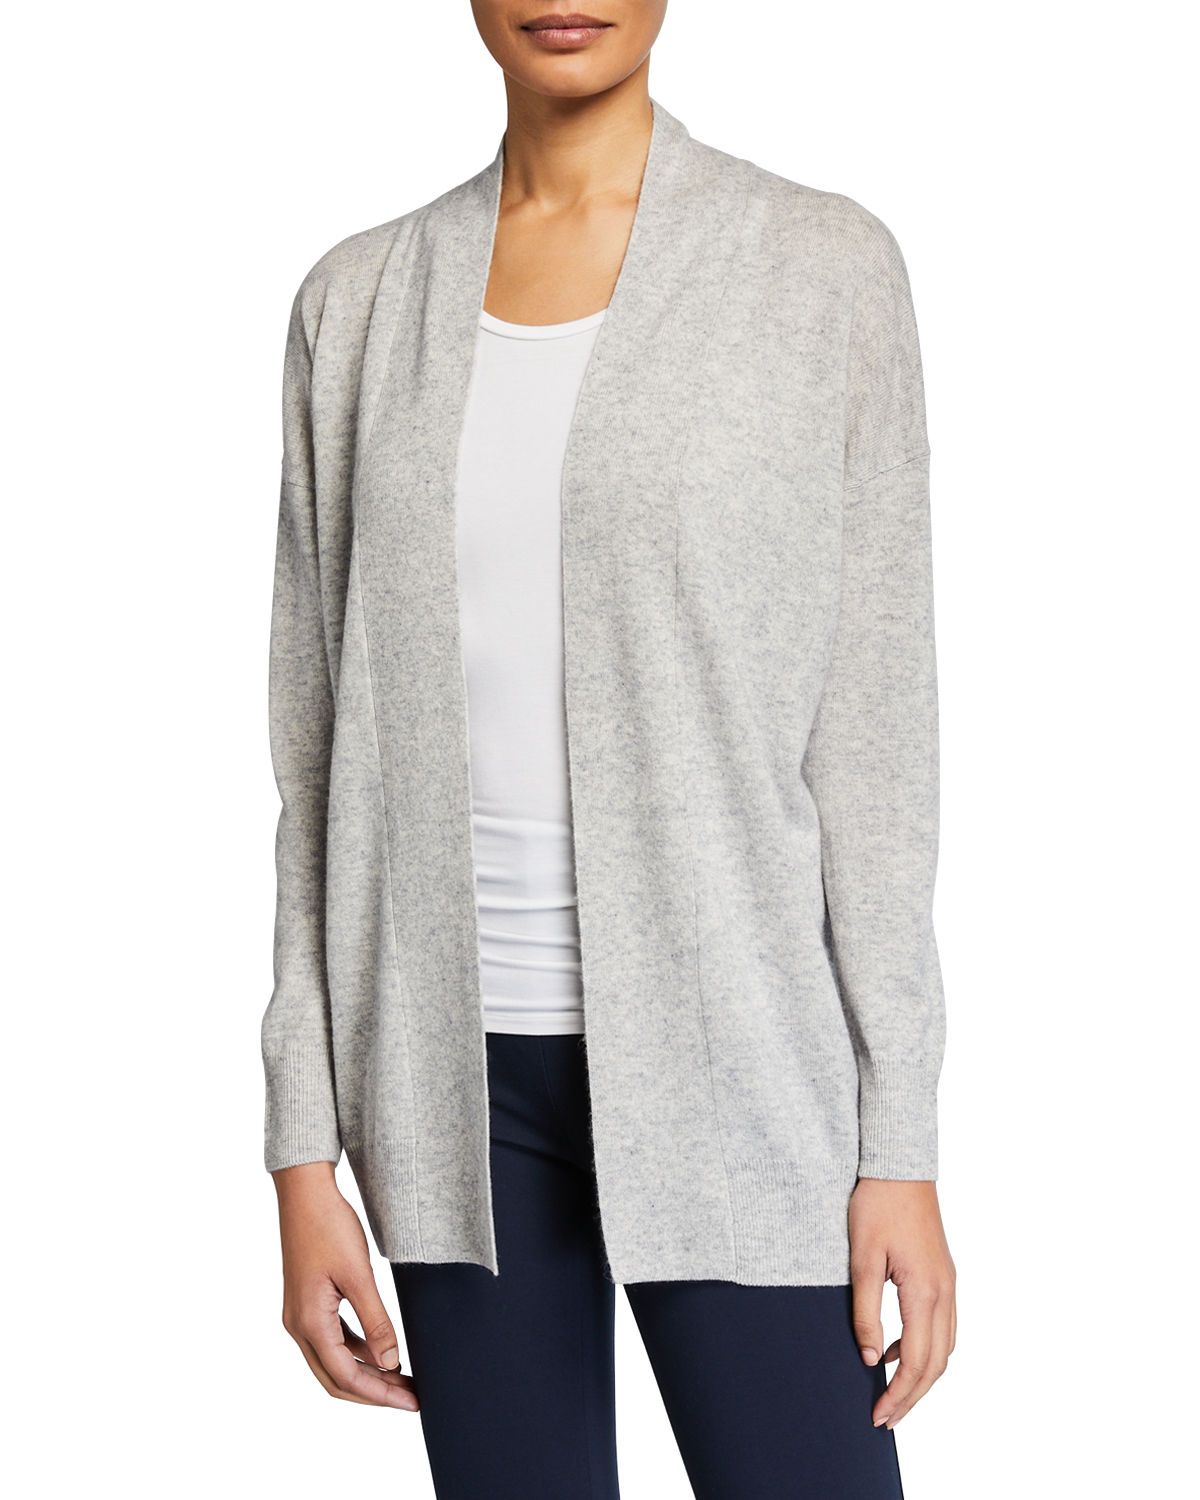 Vince Coats OPEN-FRONT DROP-SHOULDER WOOL/CASHMERE CARDIGAN